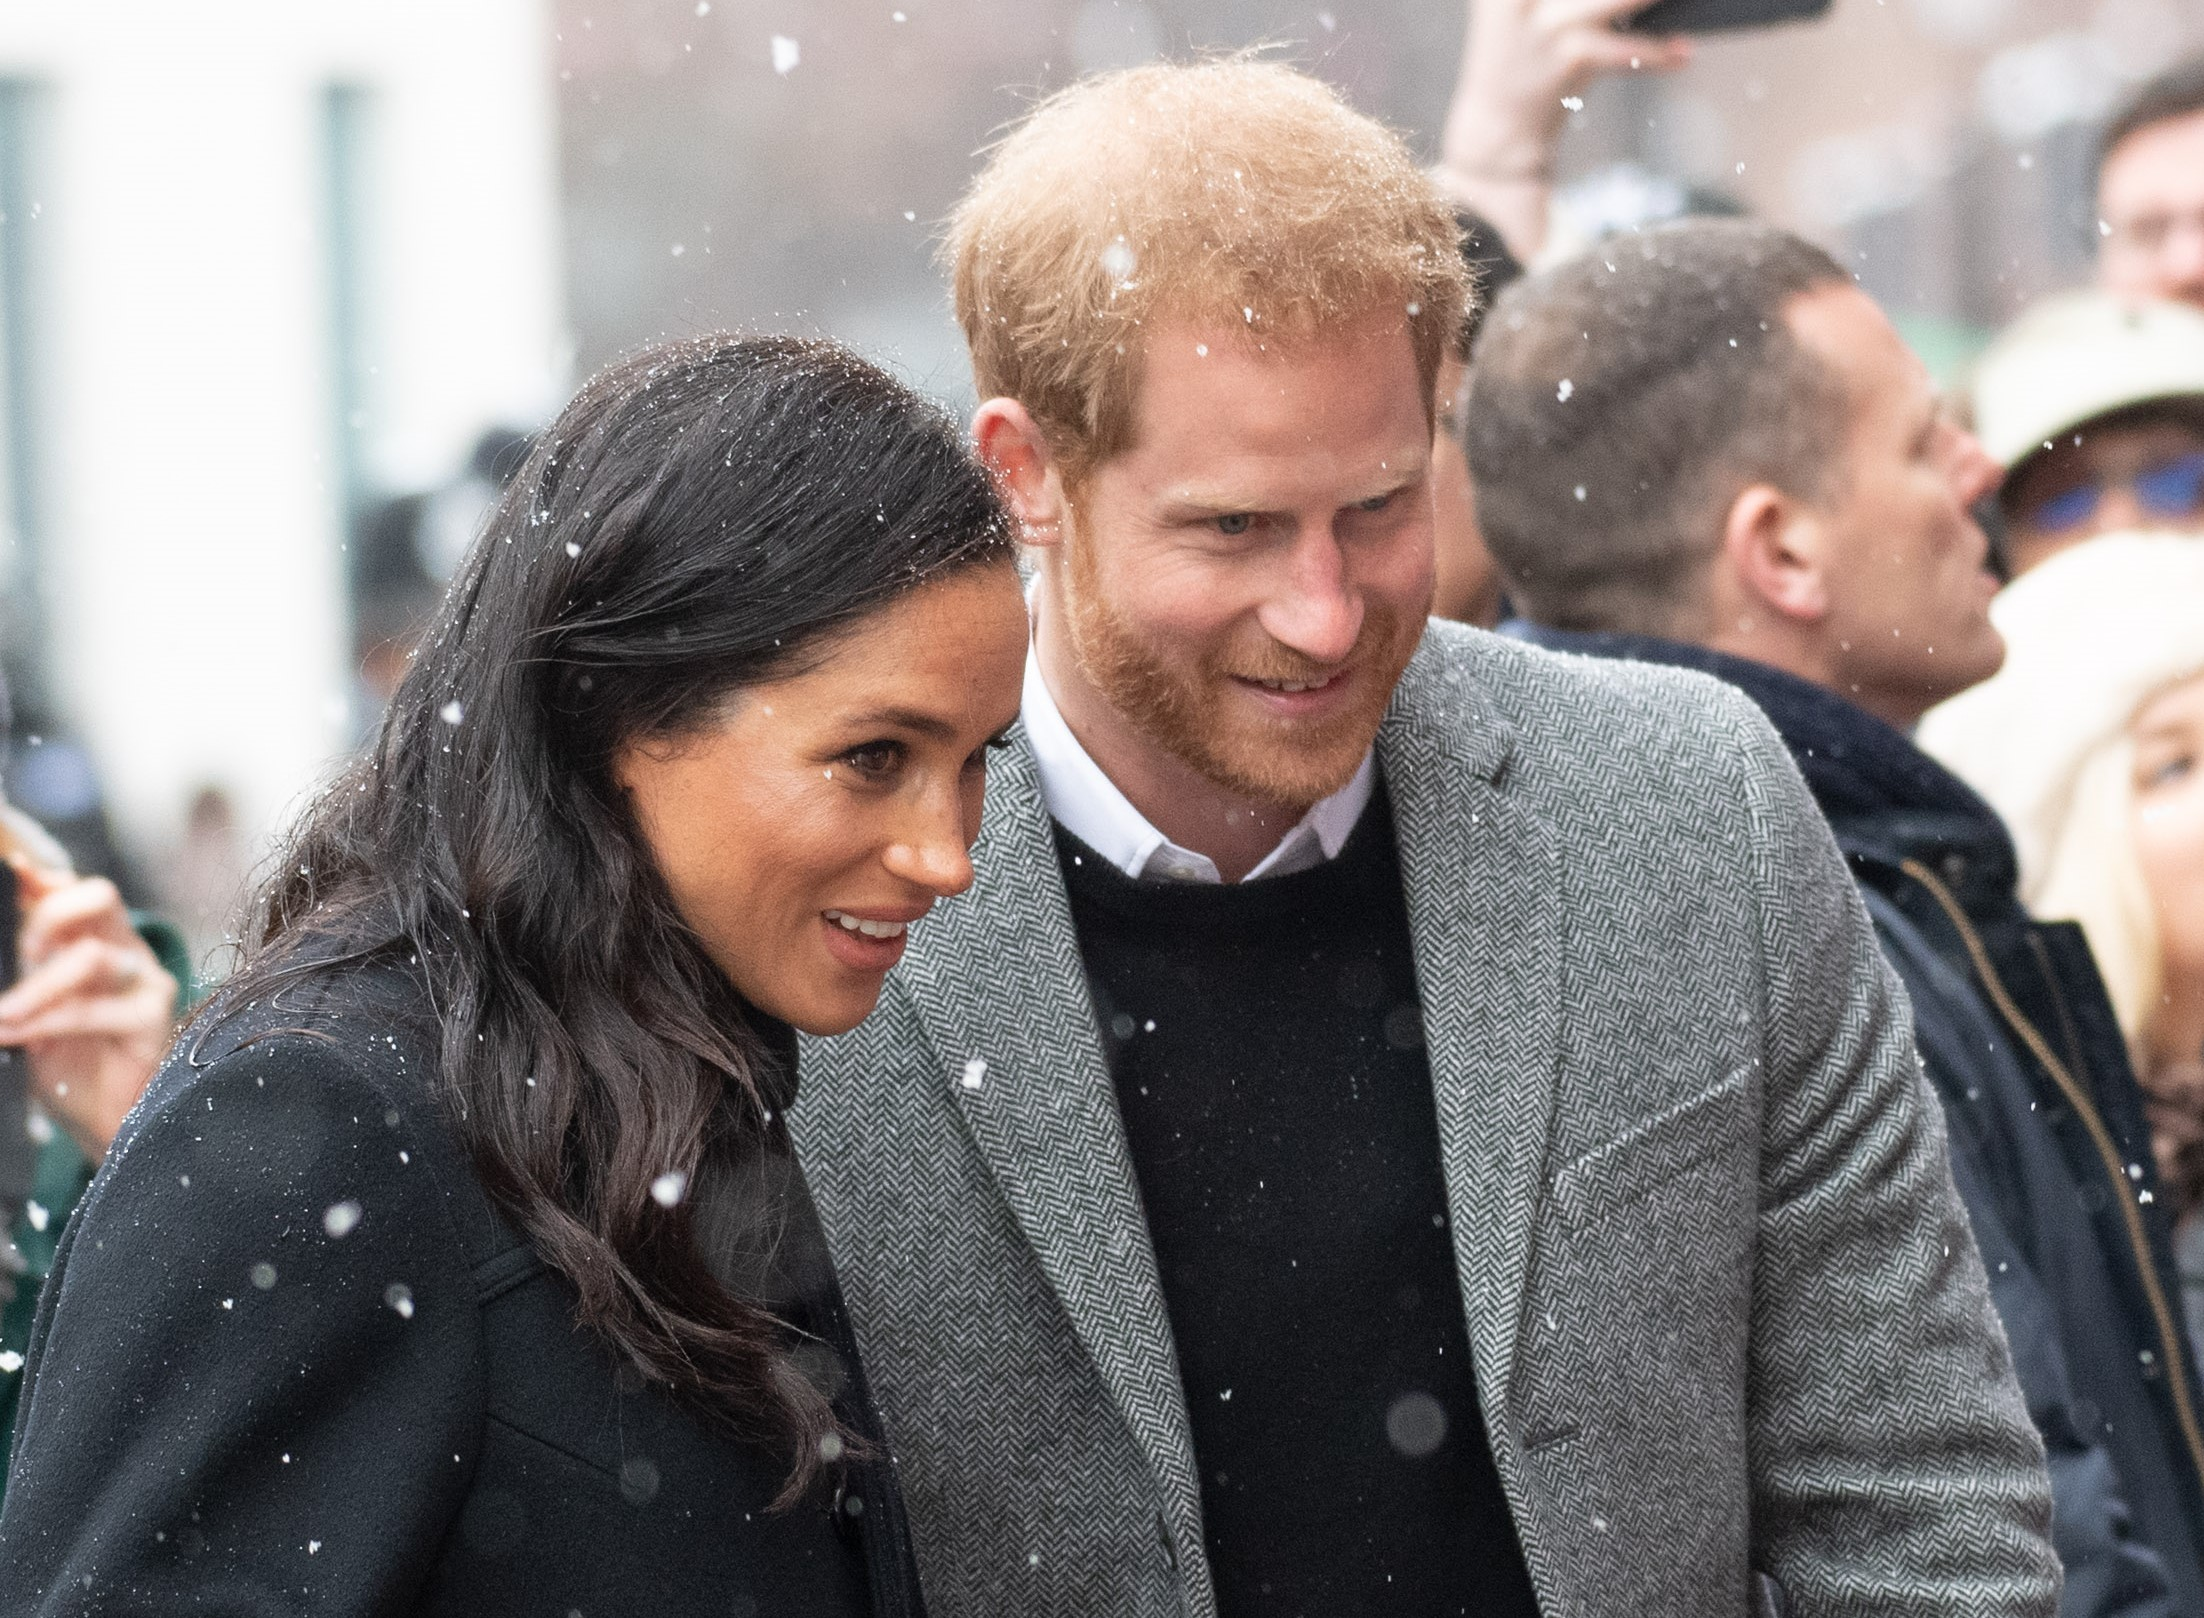 Pregnant Meghan Markle braves the snow with Prince Harry for royal visit